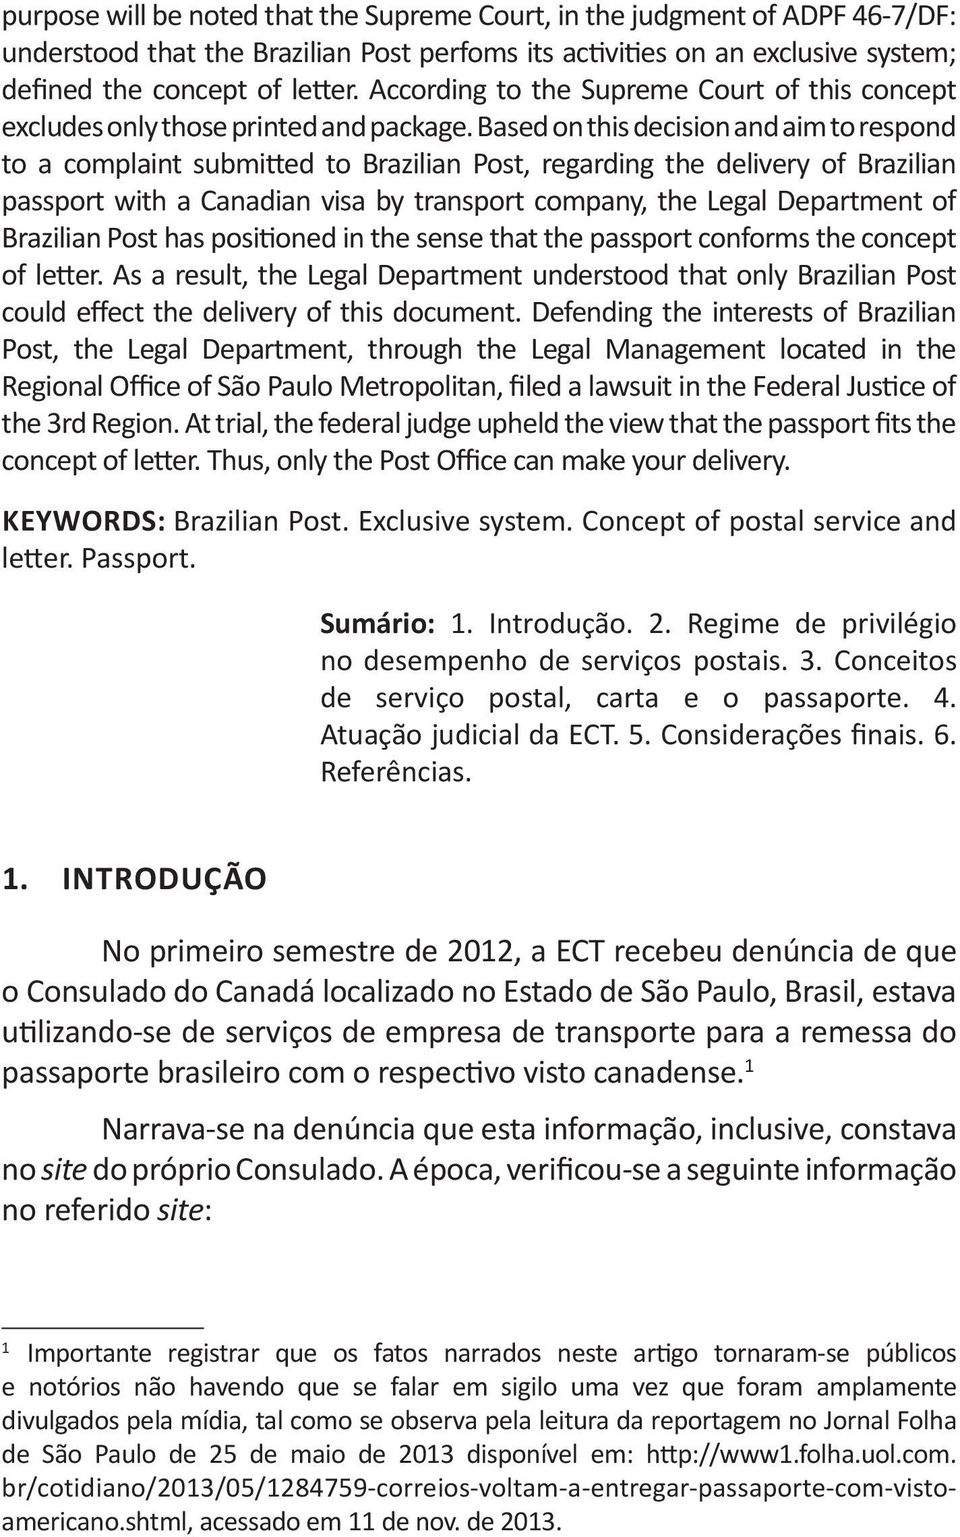 Based on this decision and aim to respond to a complaint submitted to Brazilian Post, regarding the delivery of Brazilian passport with a Canadian visa by transport company, the Legal Department of